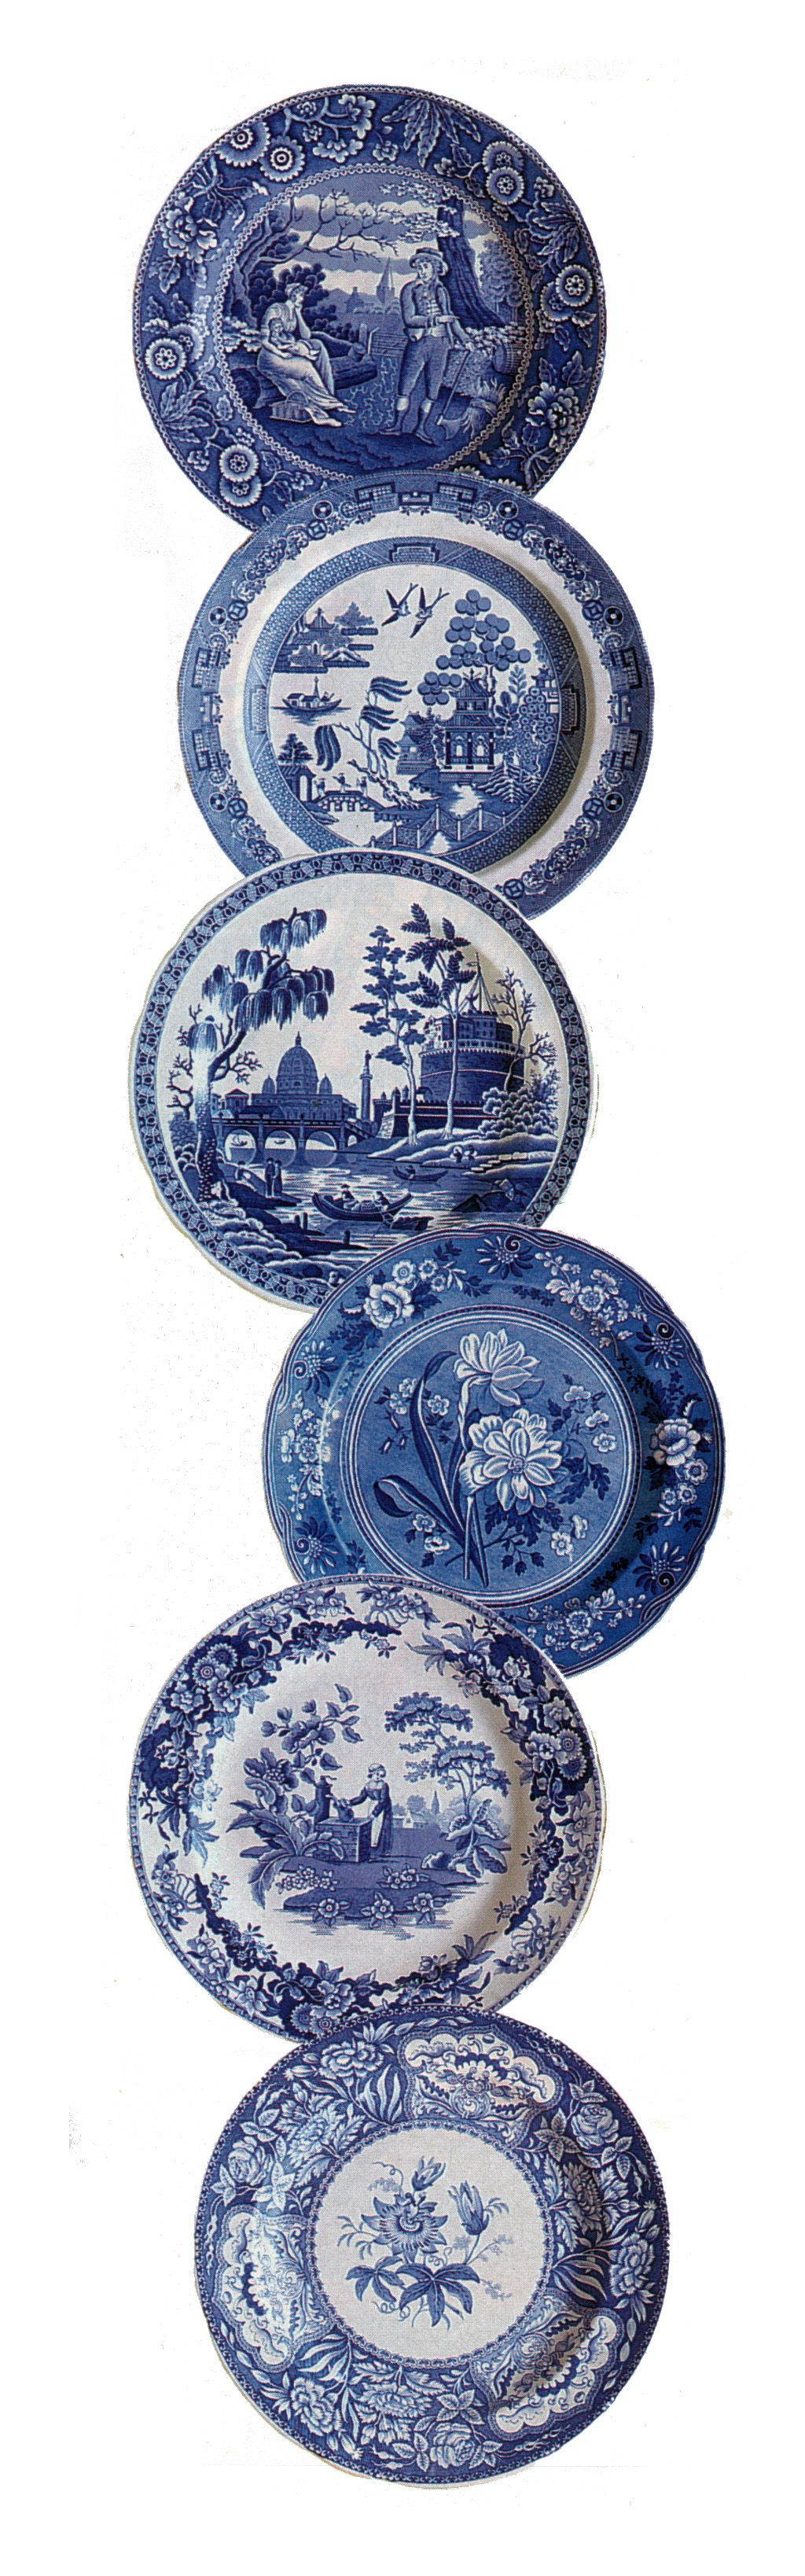 """Spode Blue Room Collection Plates - Patterns: Woodman 1815, Willow 1790, Rome 1811, Botanical 1830, Girl at the Well 1822, and Floral 1830, each 10.25"""", made in England"""